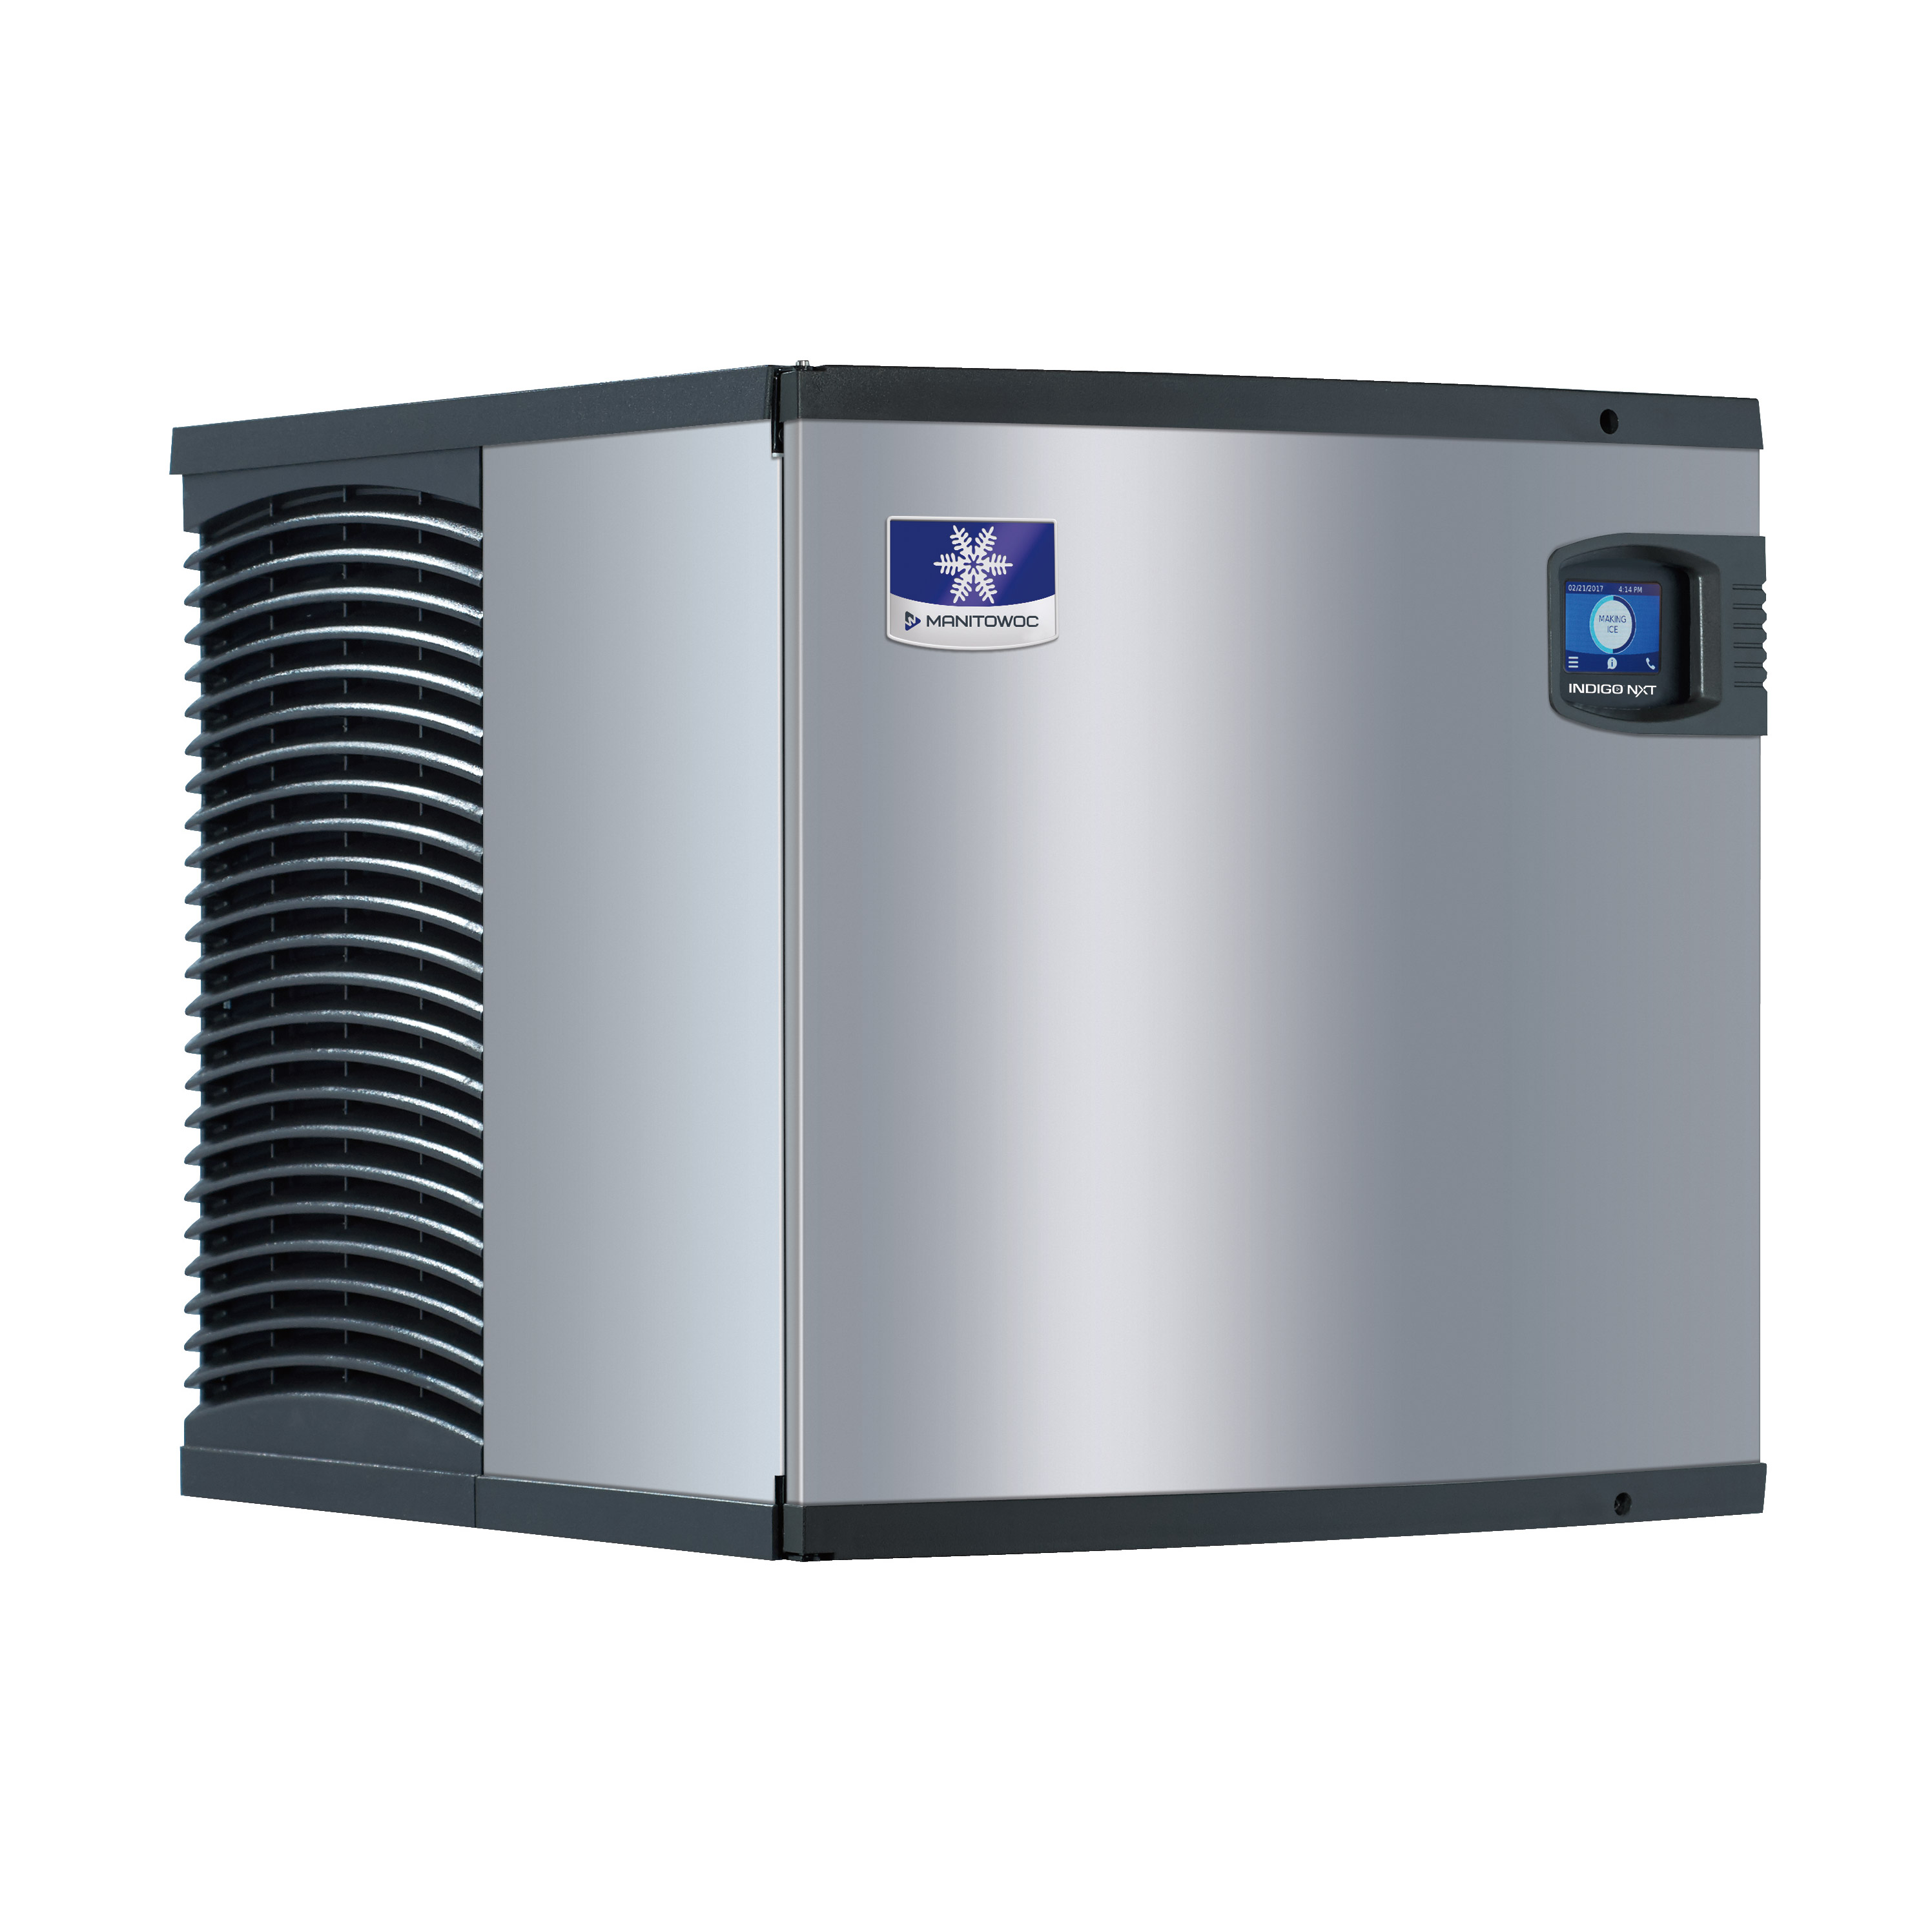 Manitowoc IDT0420A ice maker, cube-style